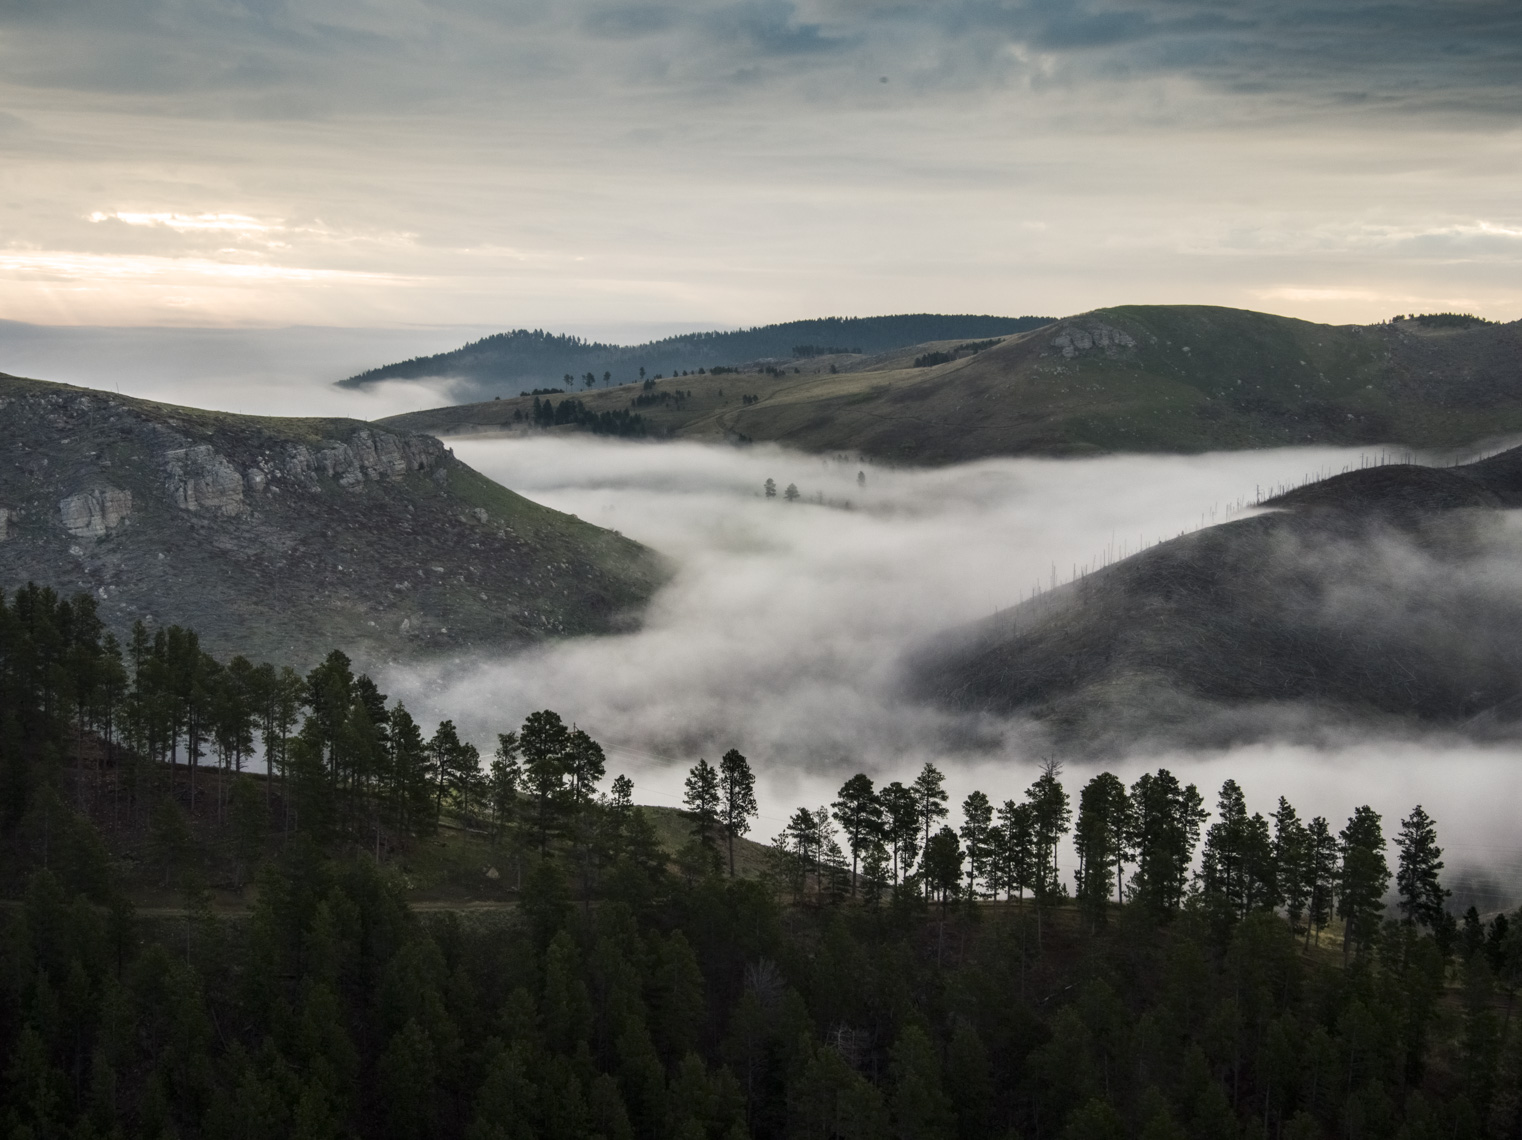 Fog rises through the mountains near Deadwood, South Dakota at sunrise